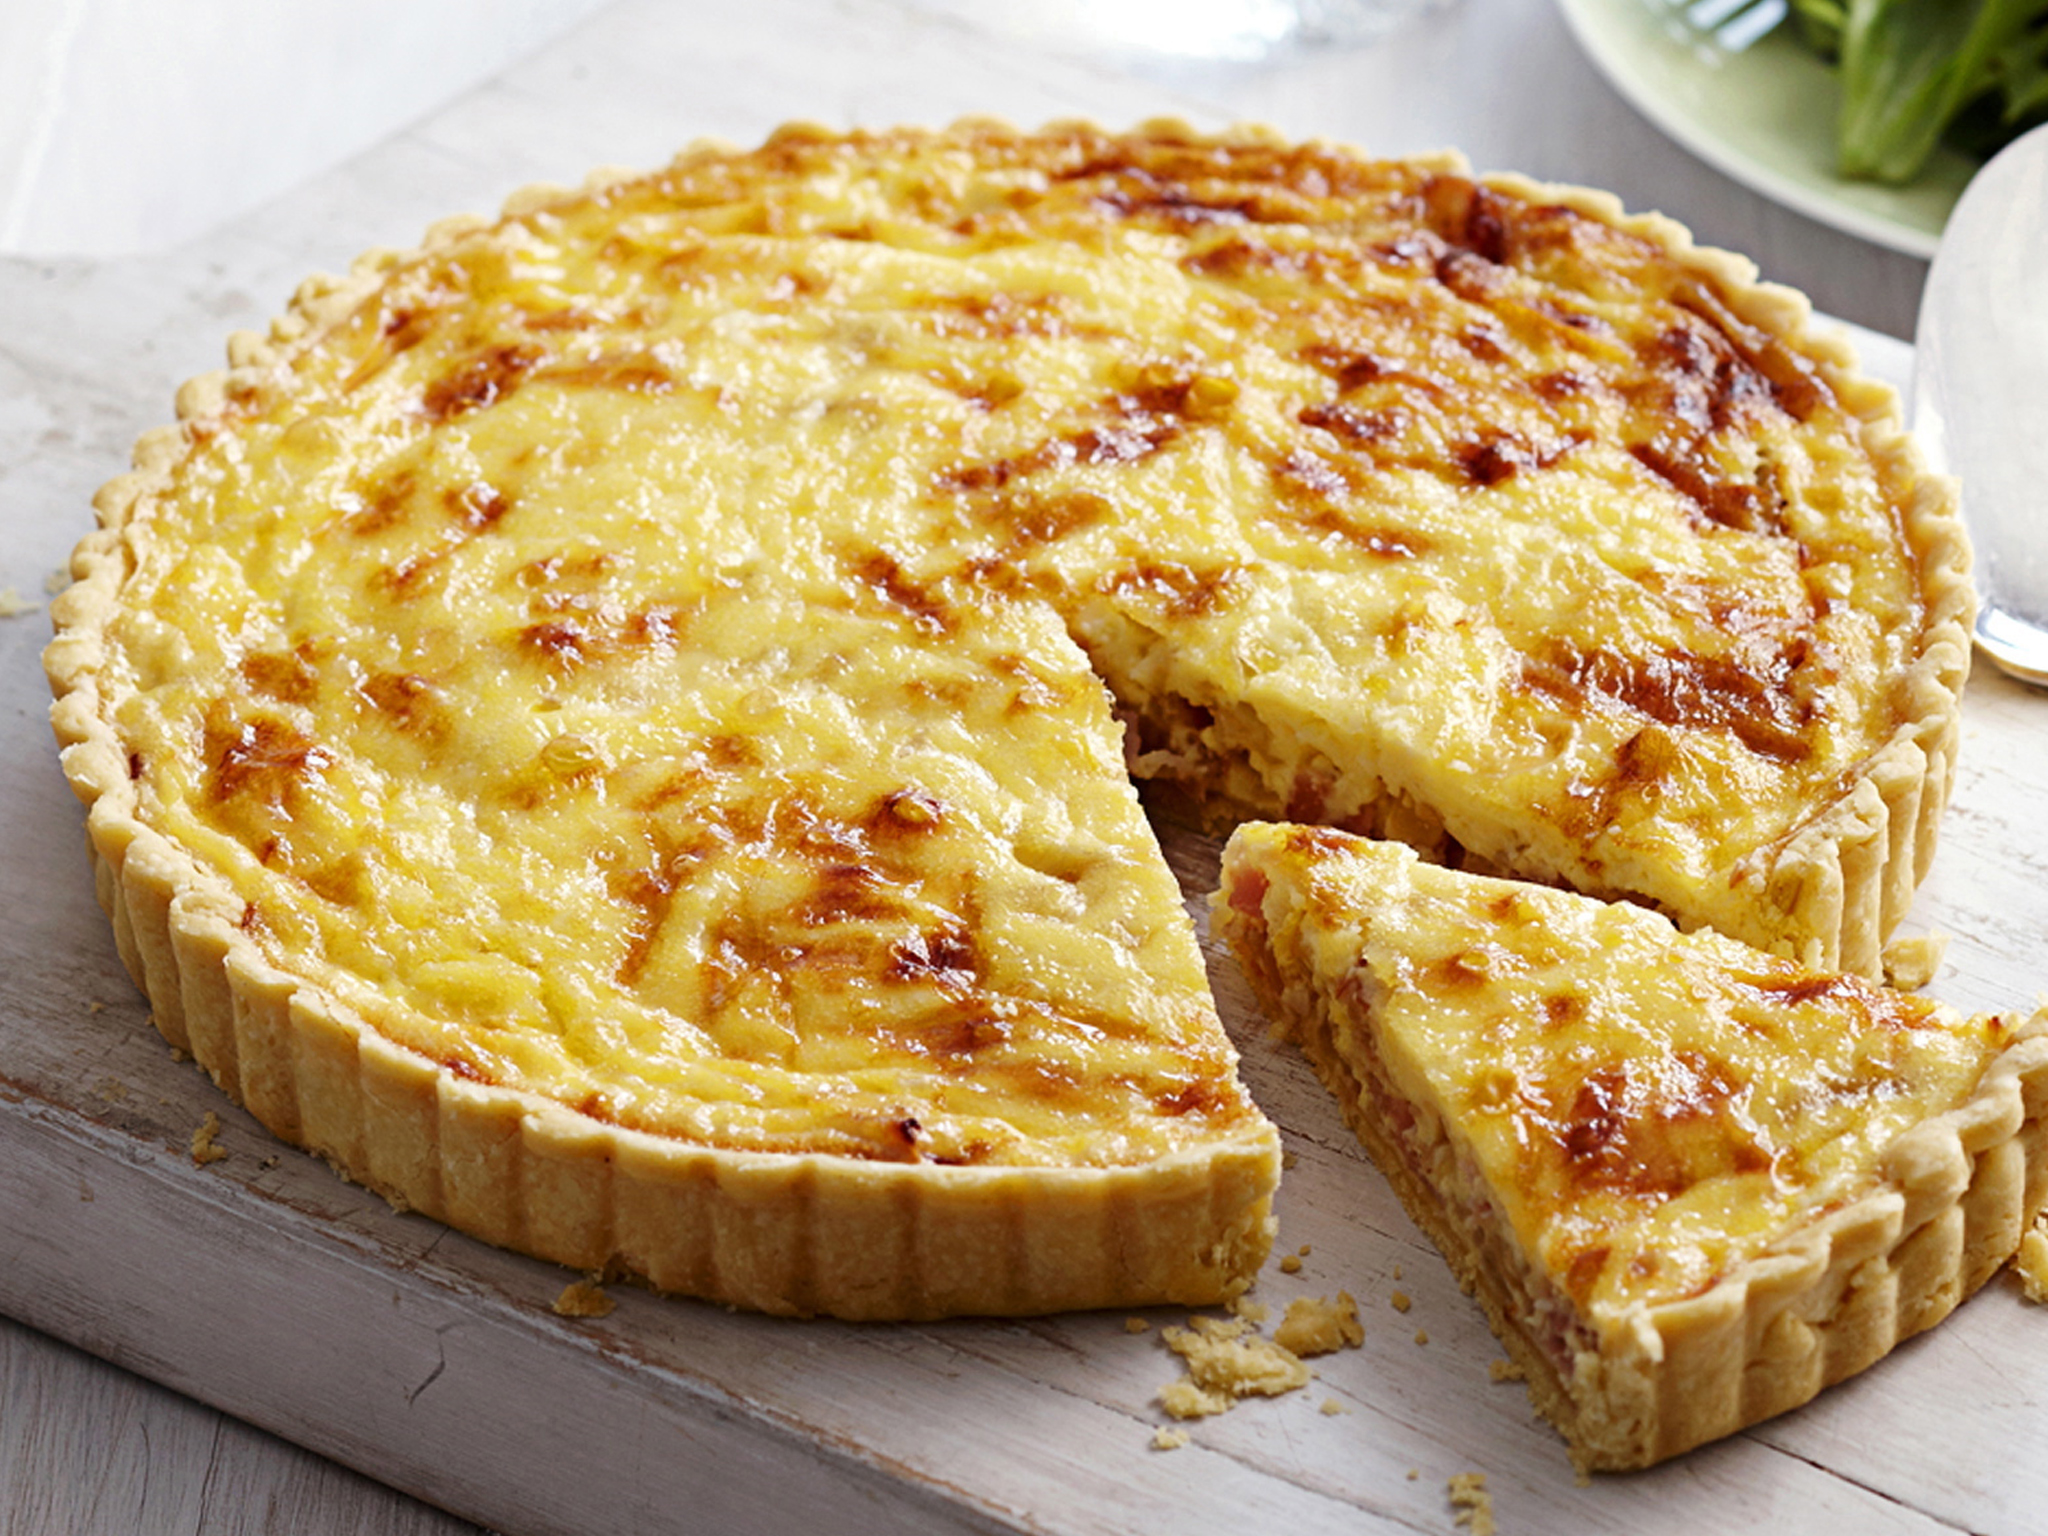 TIE Poet of the Month: 'Quick Quiche Ideas' by Martha Silano | The ...